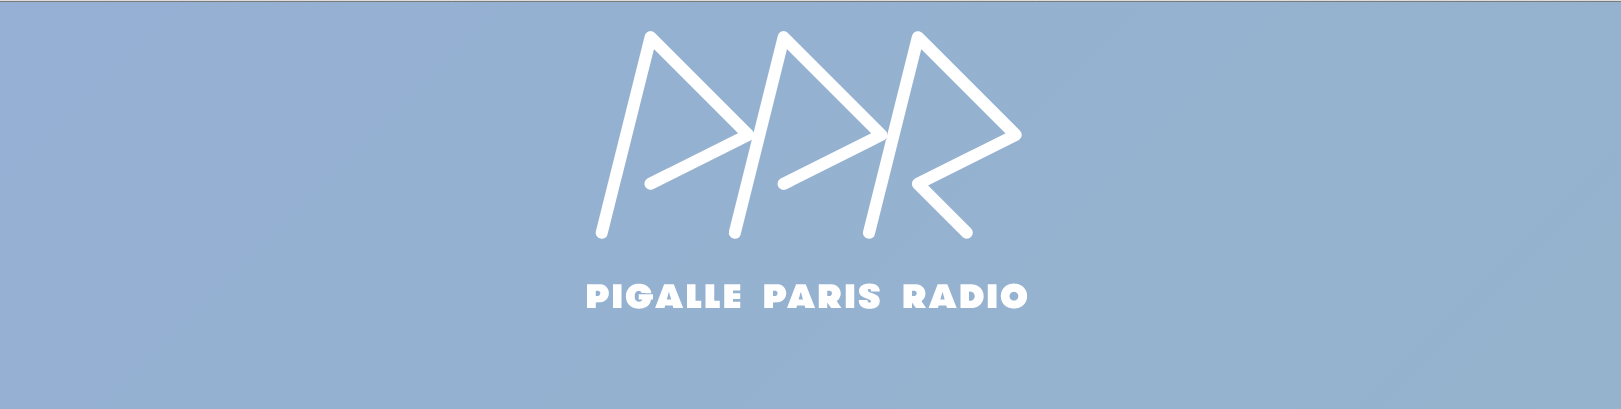 raphael-leray-hyle-pigalle-paris-radio